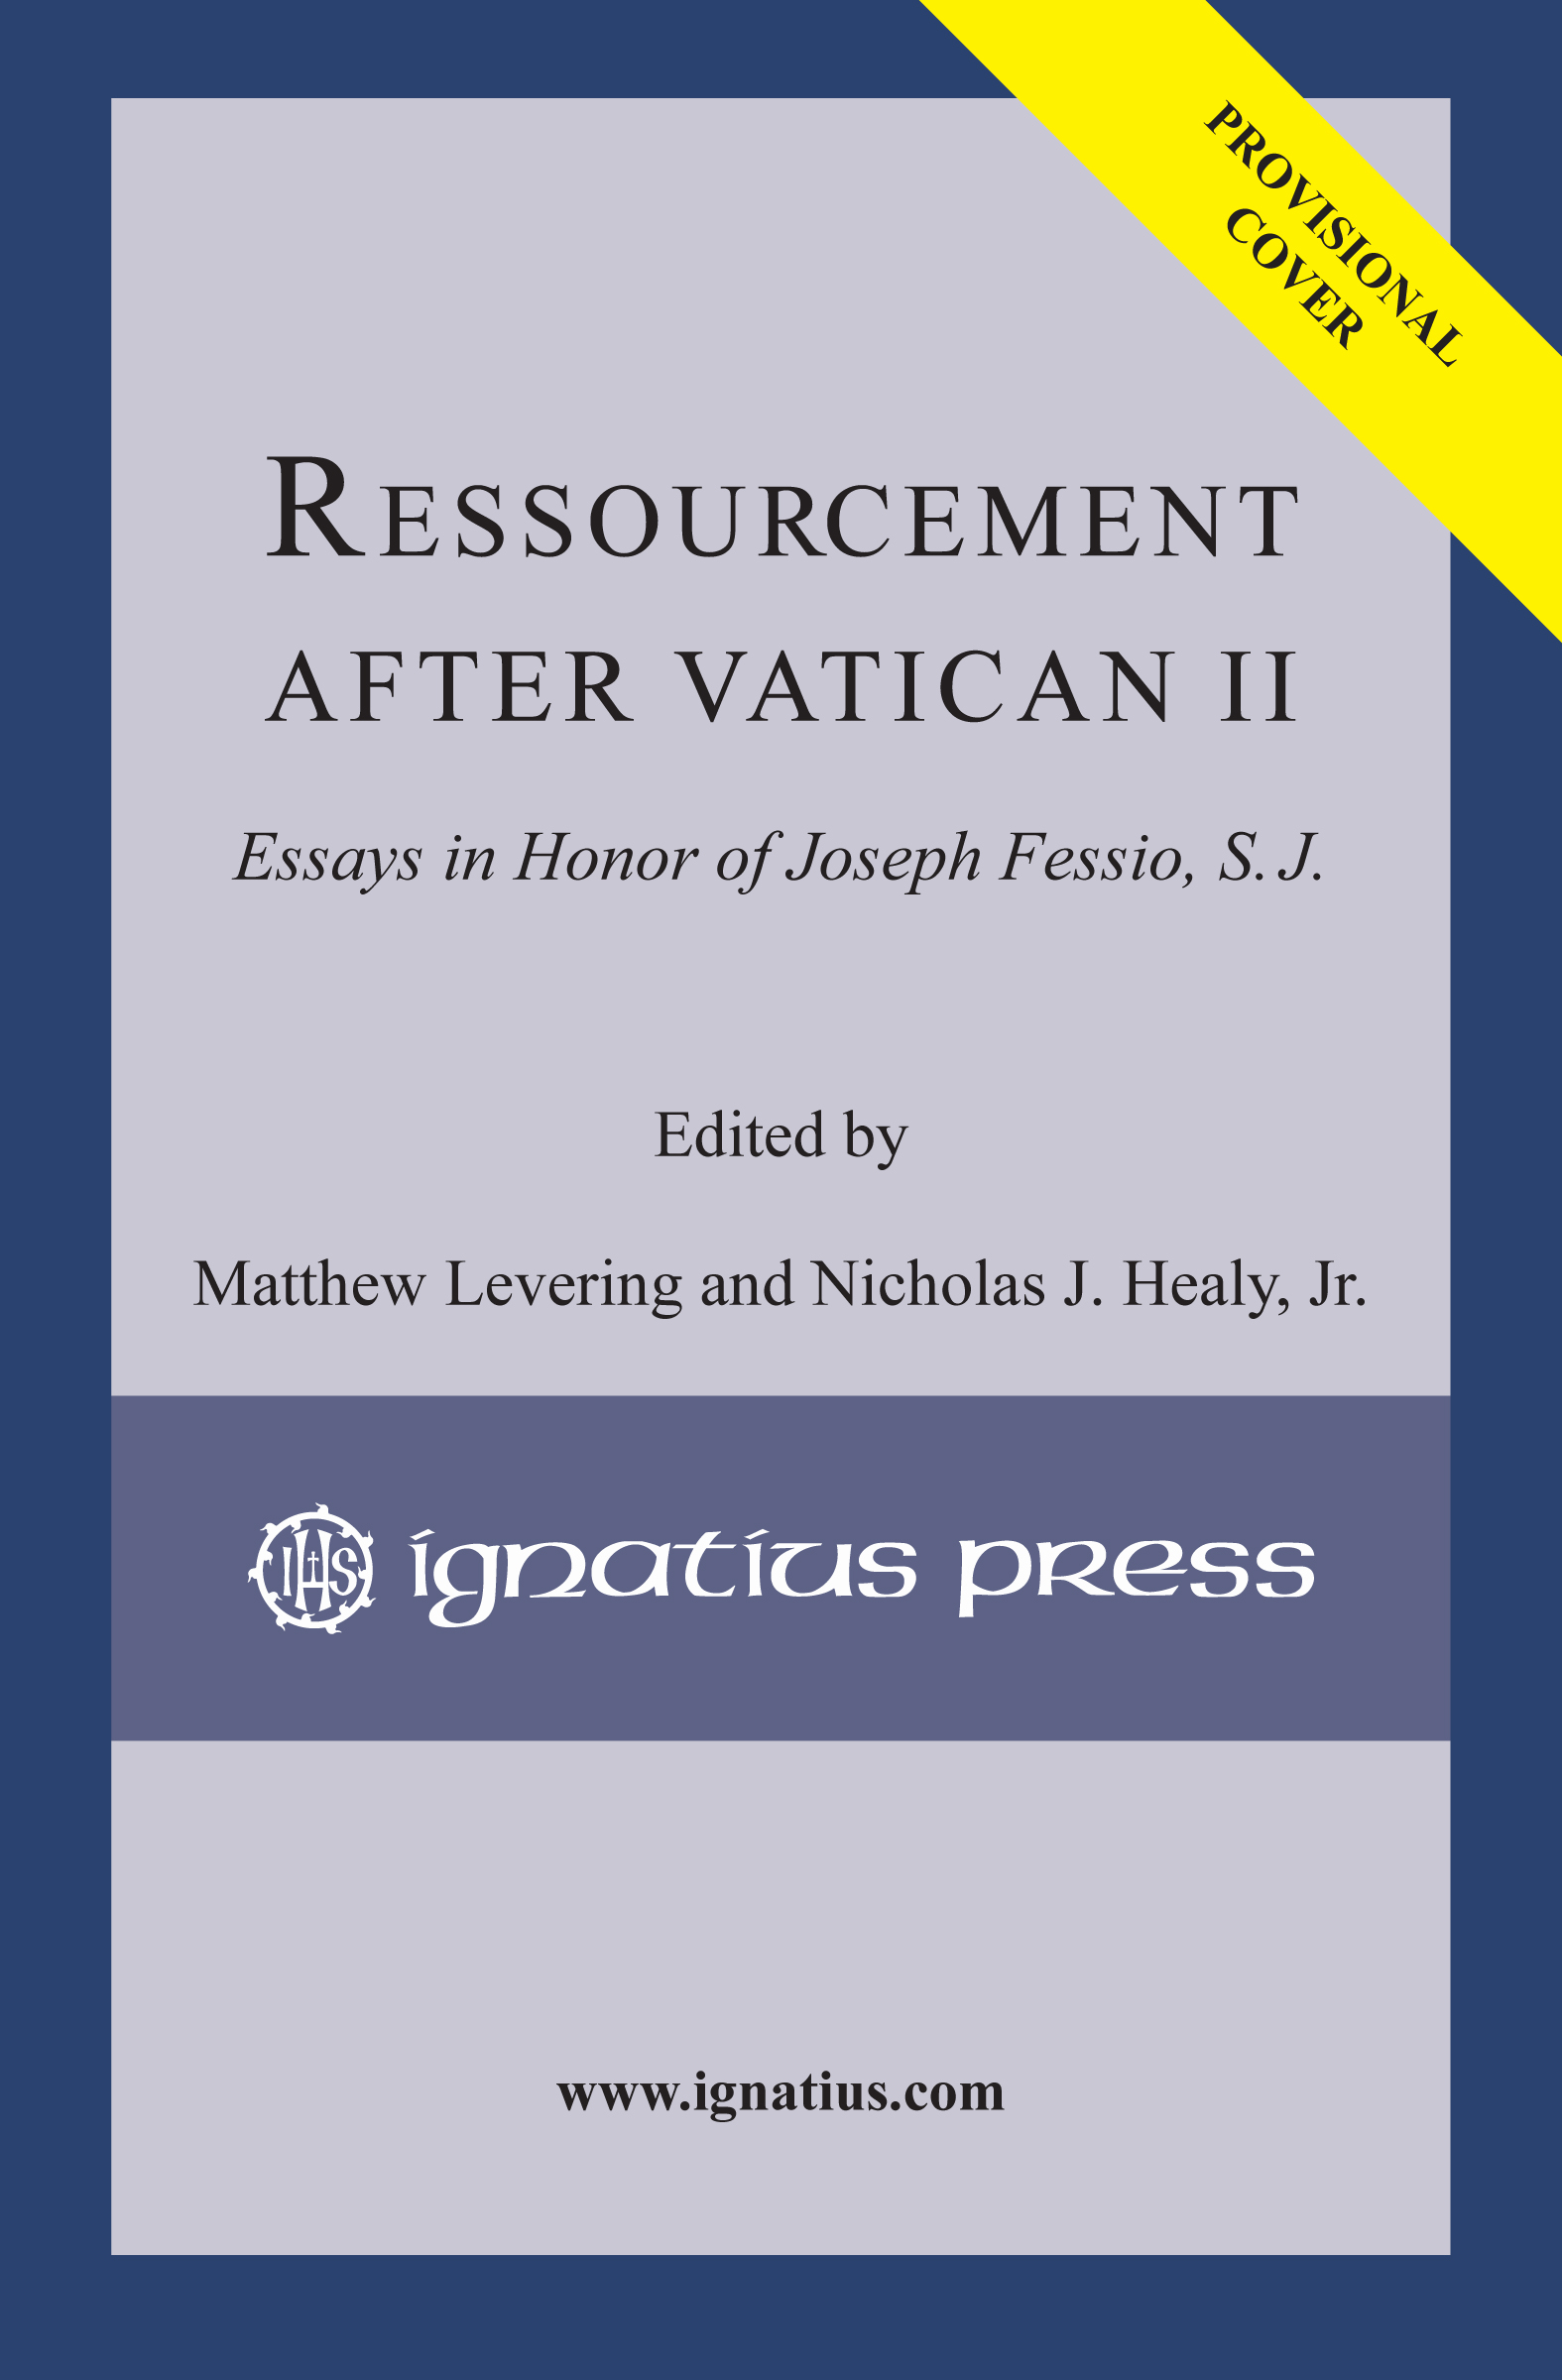 Ressourcement after Vatican II